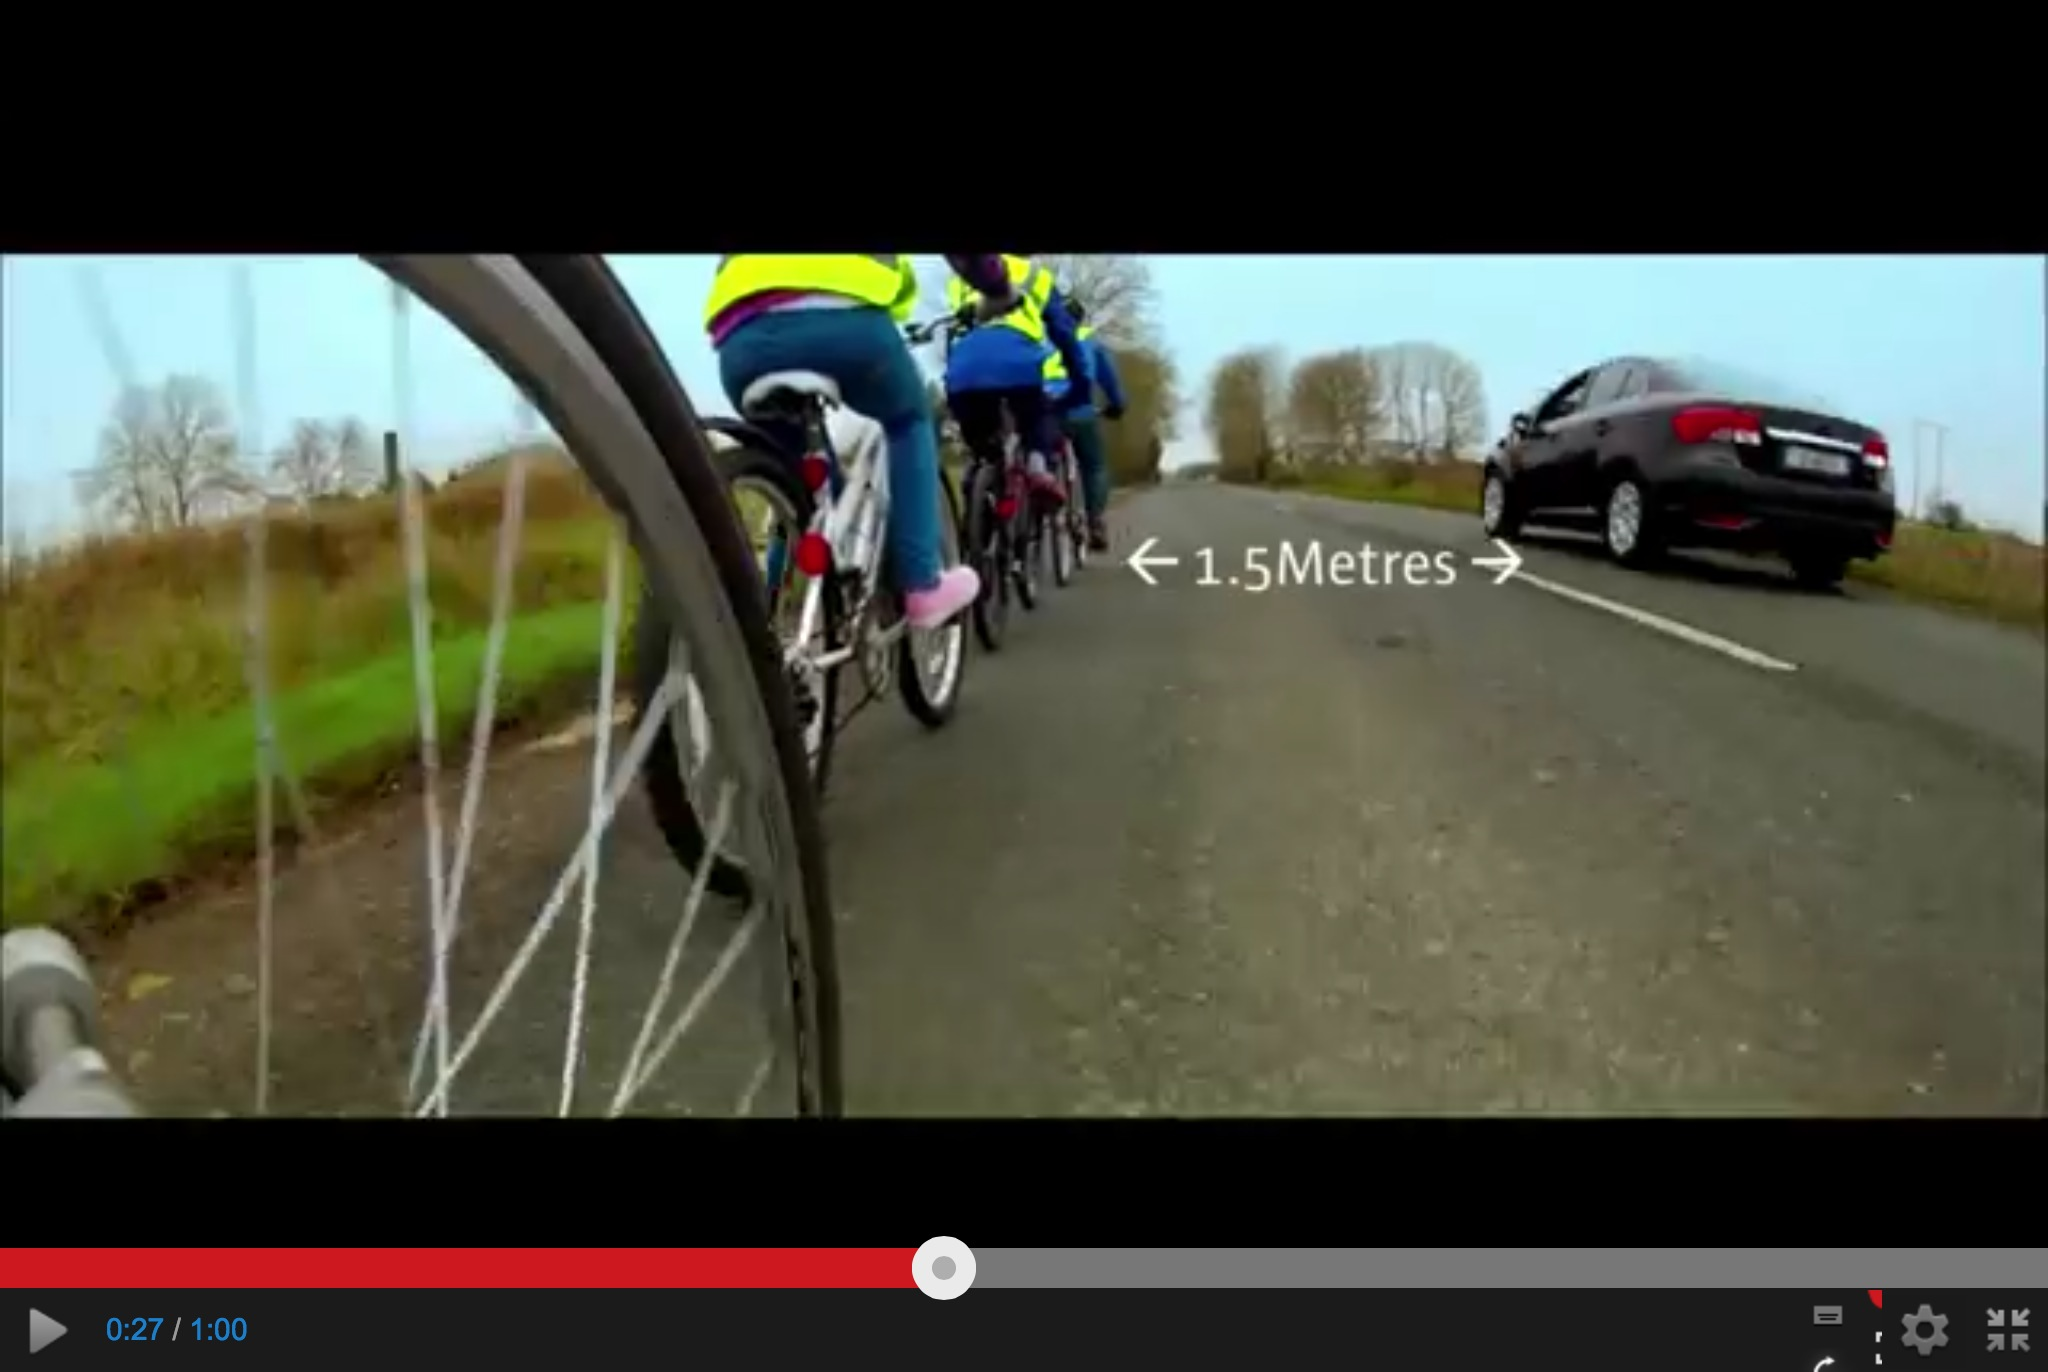 Making cycling safer